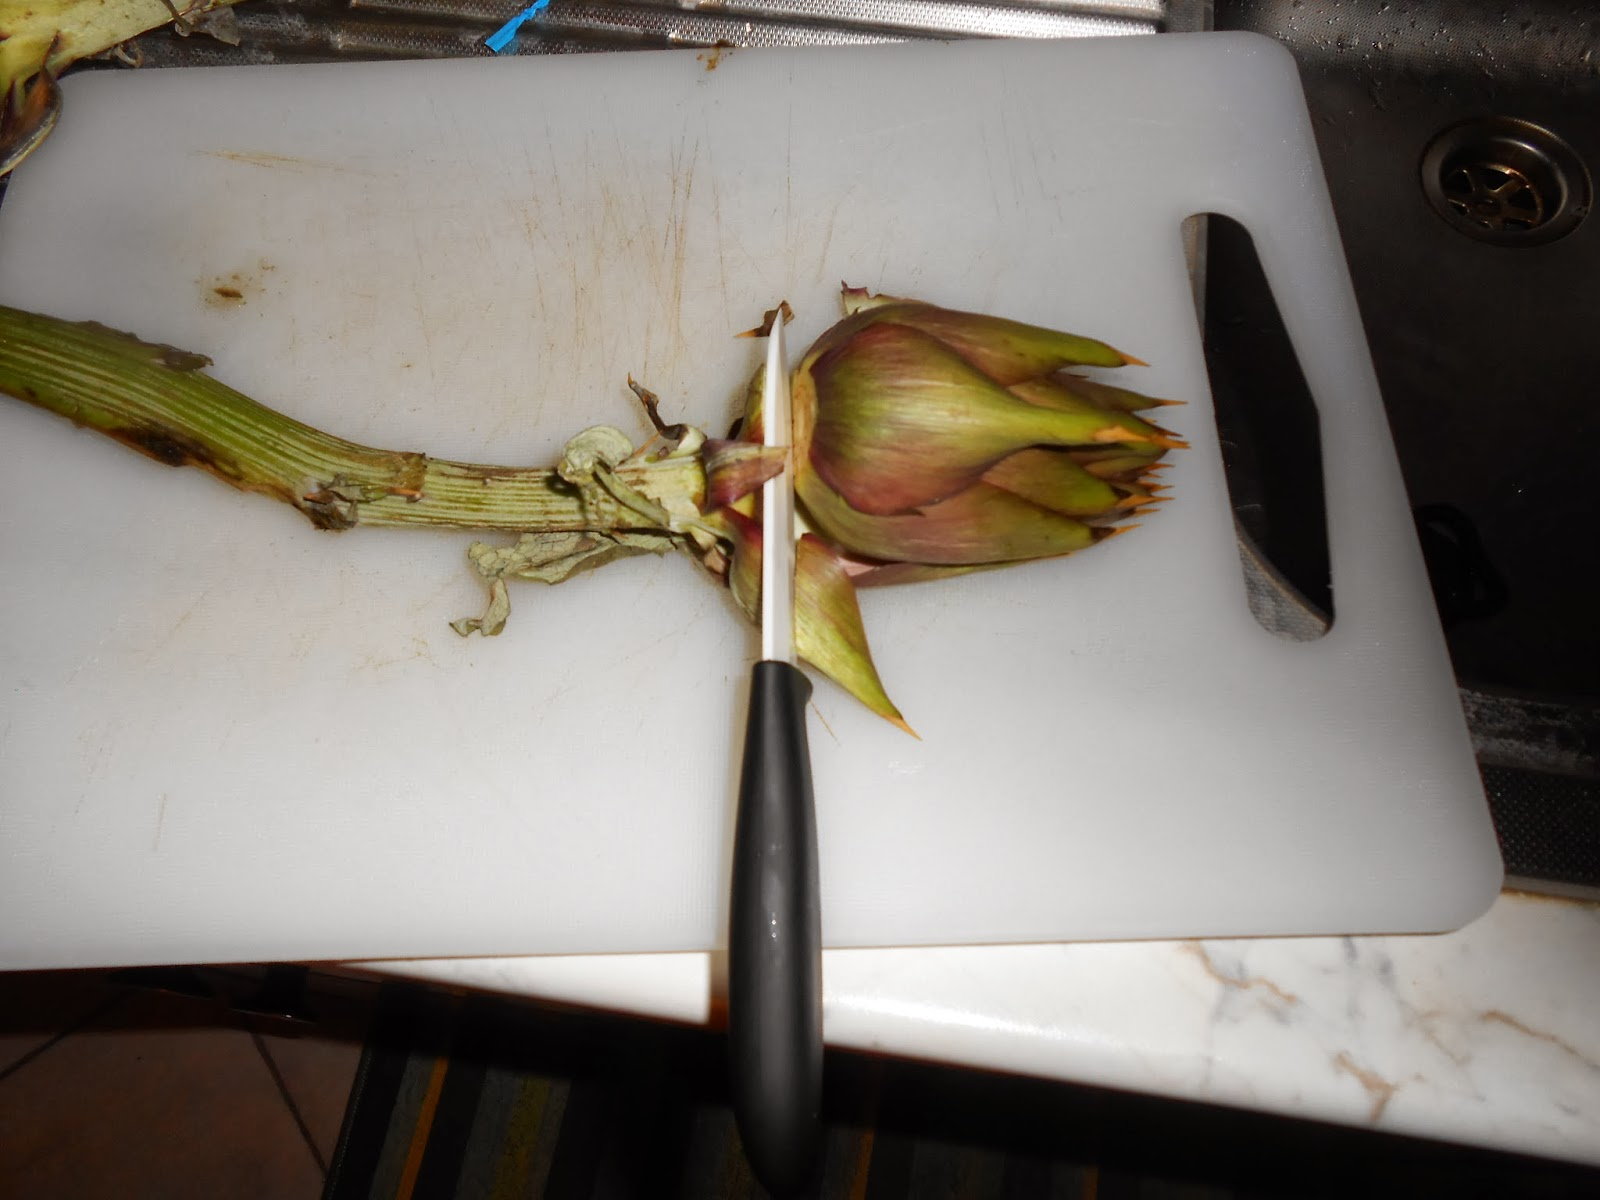 How To Clean And Prepare An Artichoke Heart